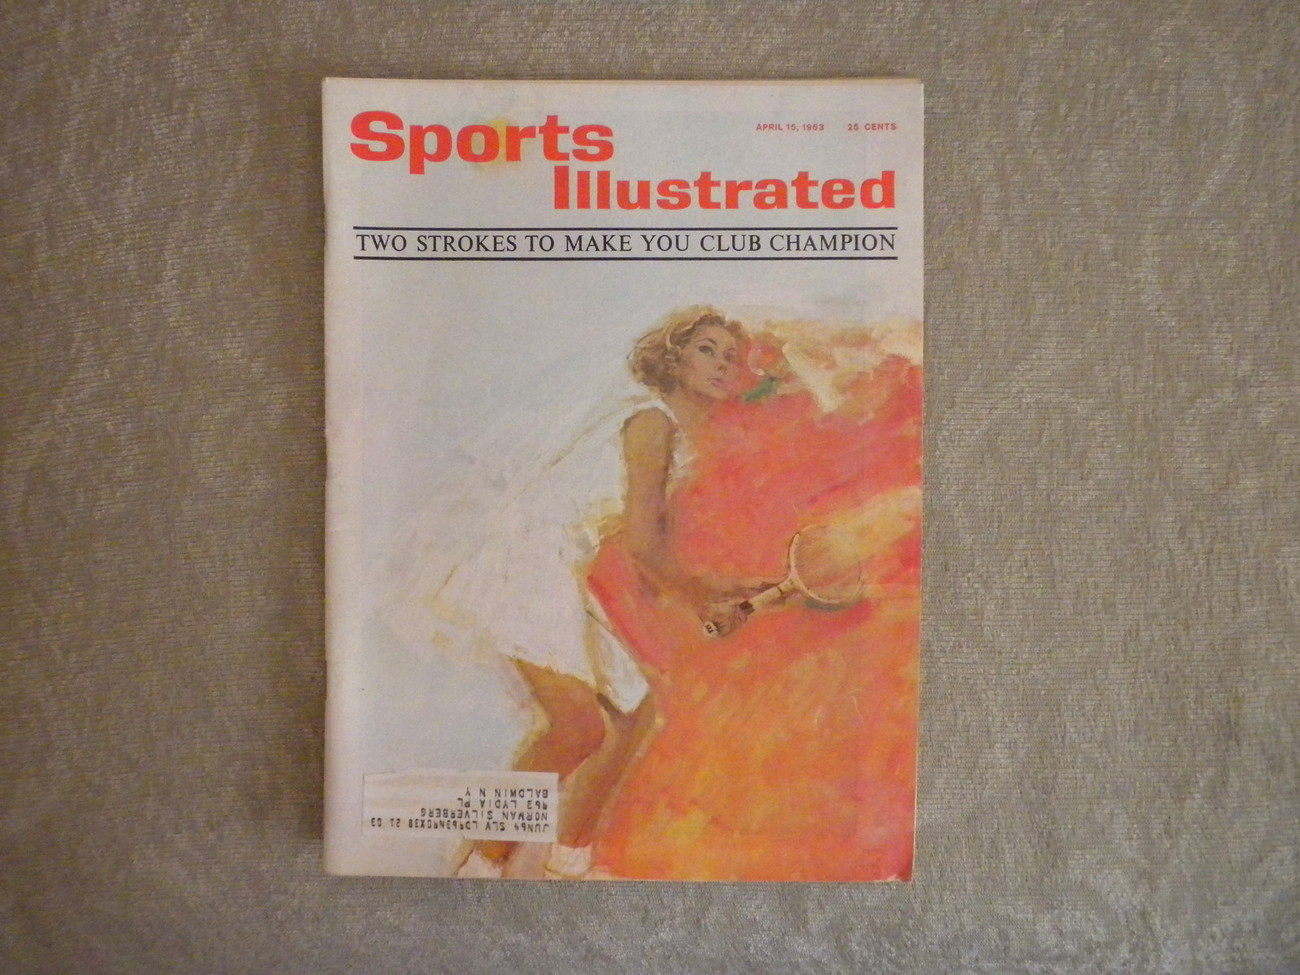 Sports Illustrated TENNIS April 1963: Bil Talbert, James Braddock, Jack Nicklaus